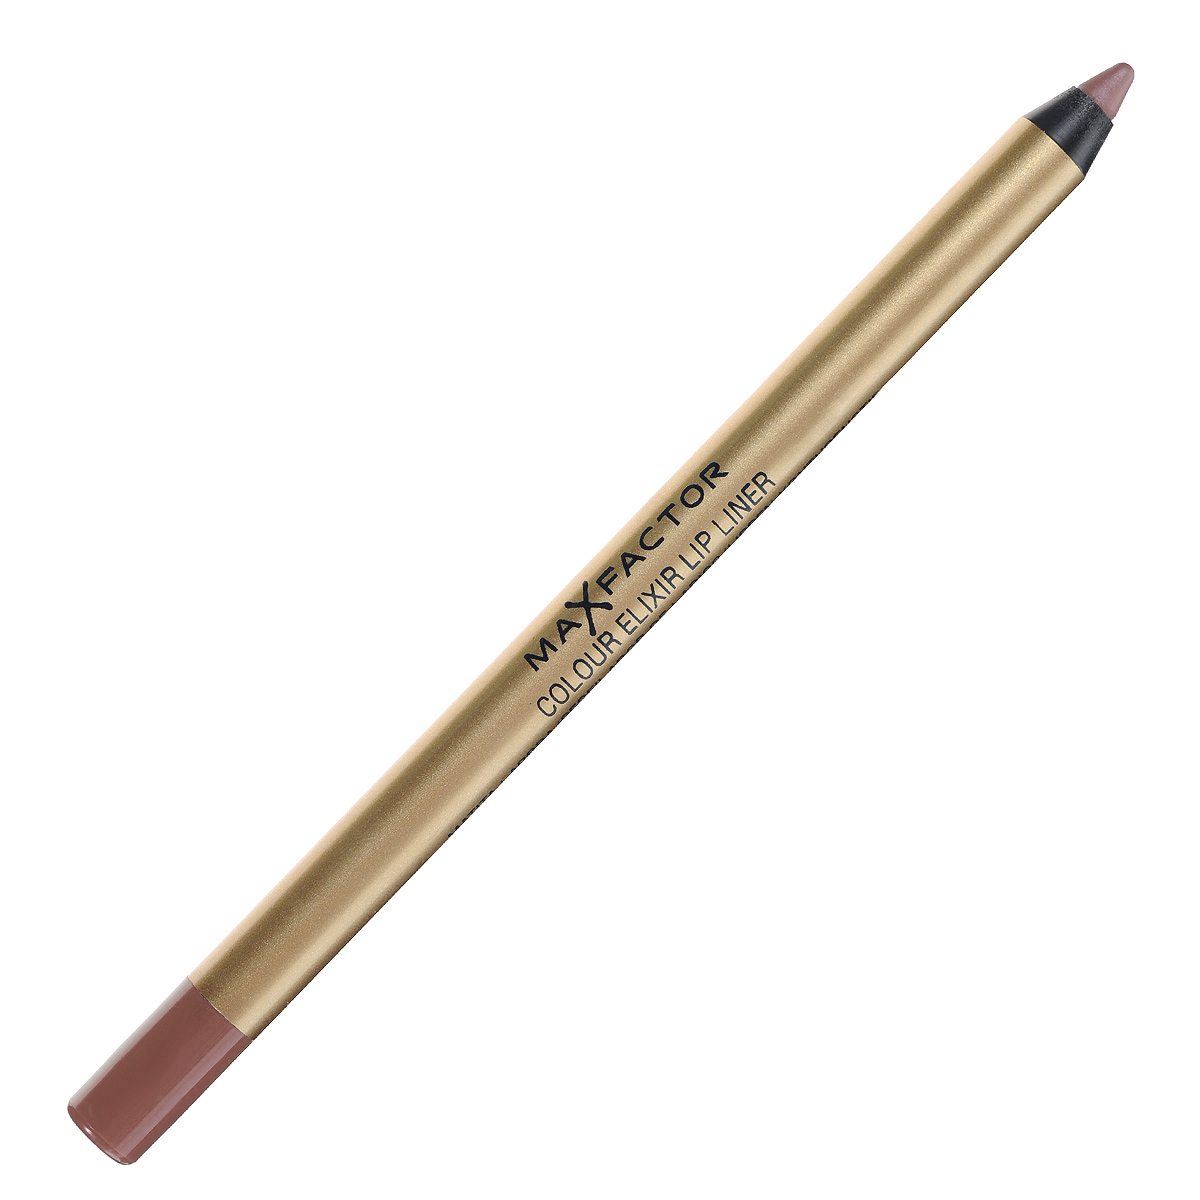 Max Factor Карандаш для губ Colour Elixir Lip Liner, тон №14 brown n nude, цвет: коричневый косметические карандаши max factor max factor карандаш для губ colour elixir lip liner 08 тон mauve mistress